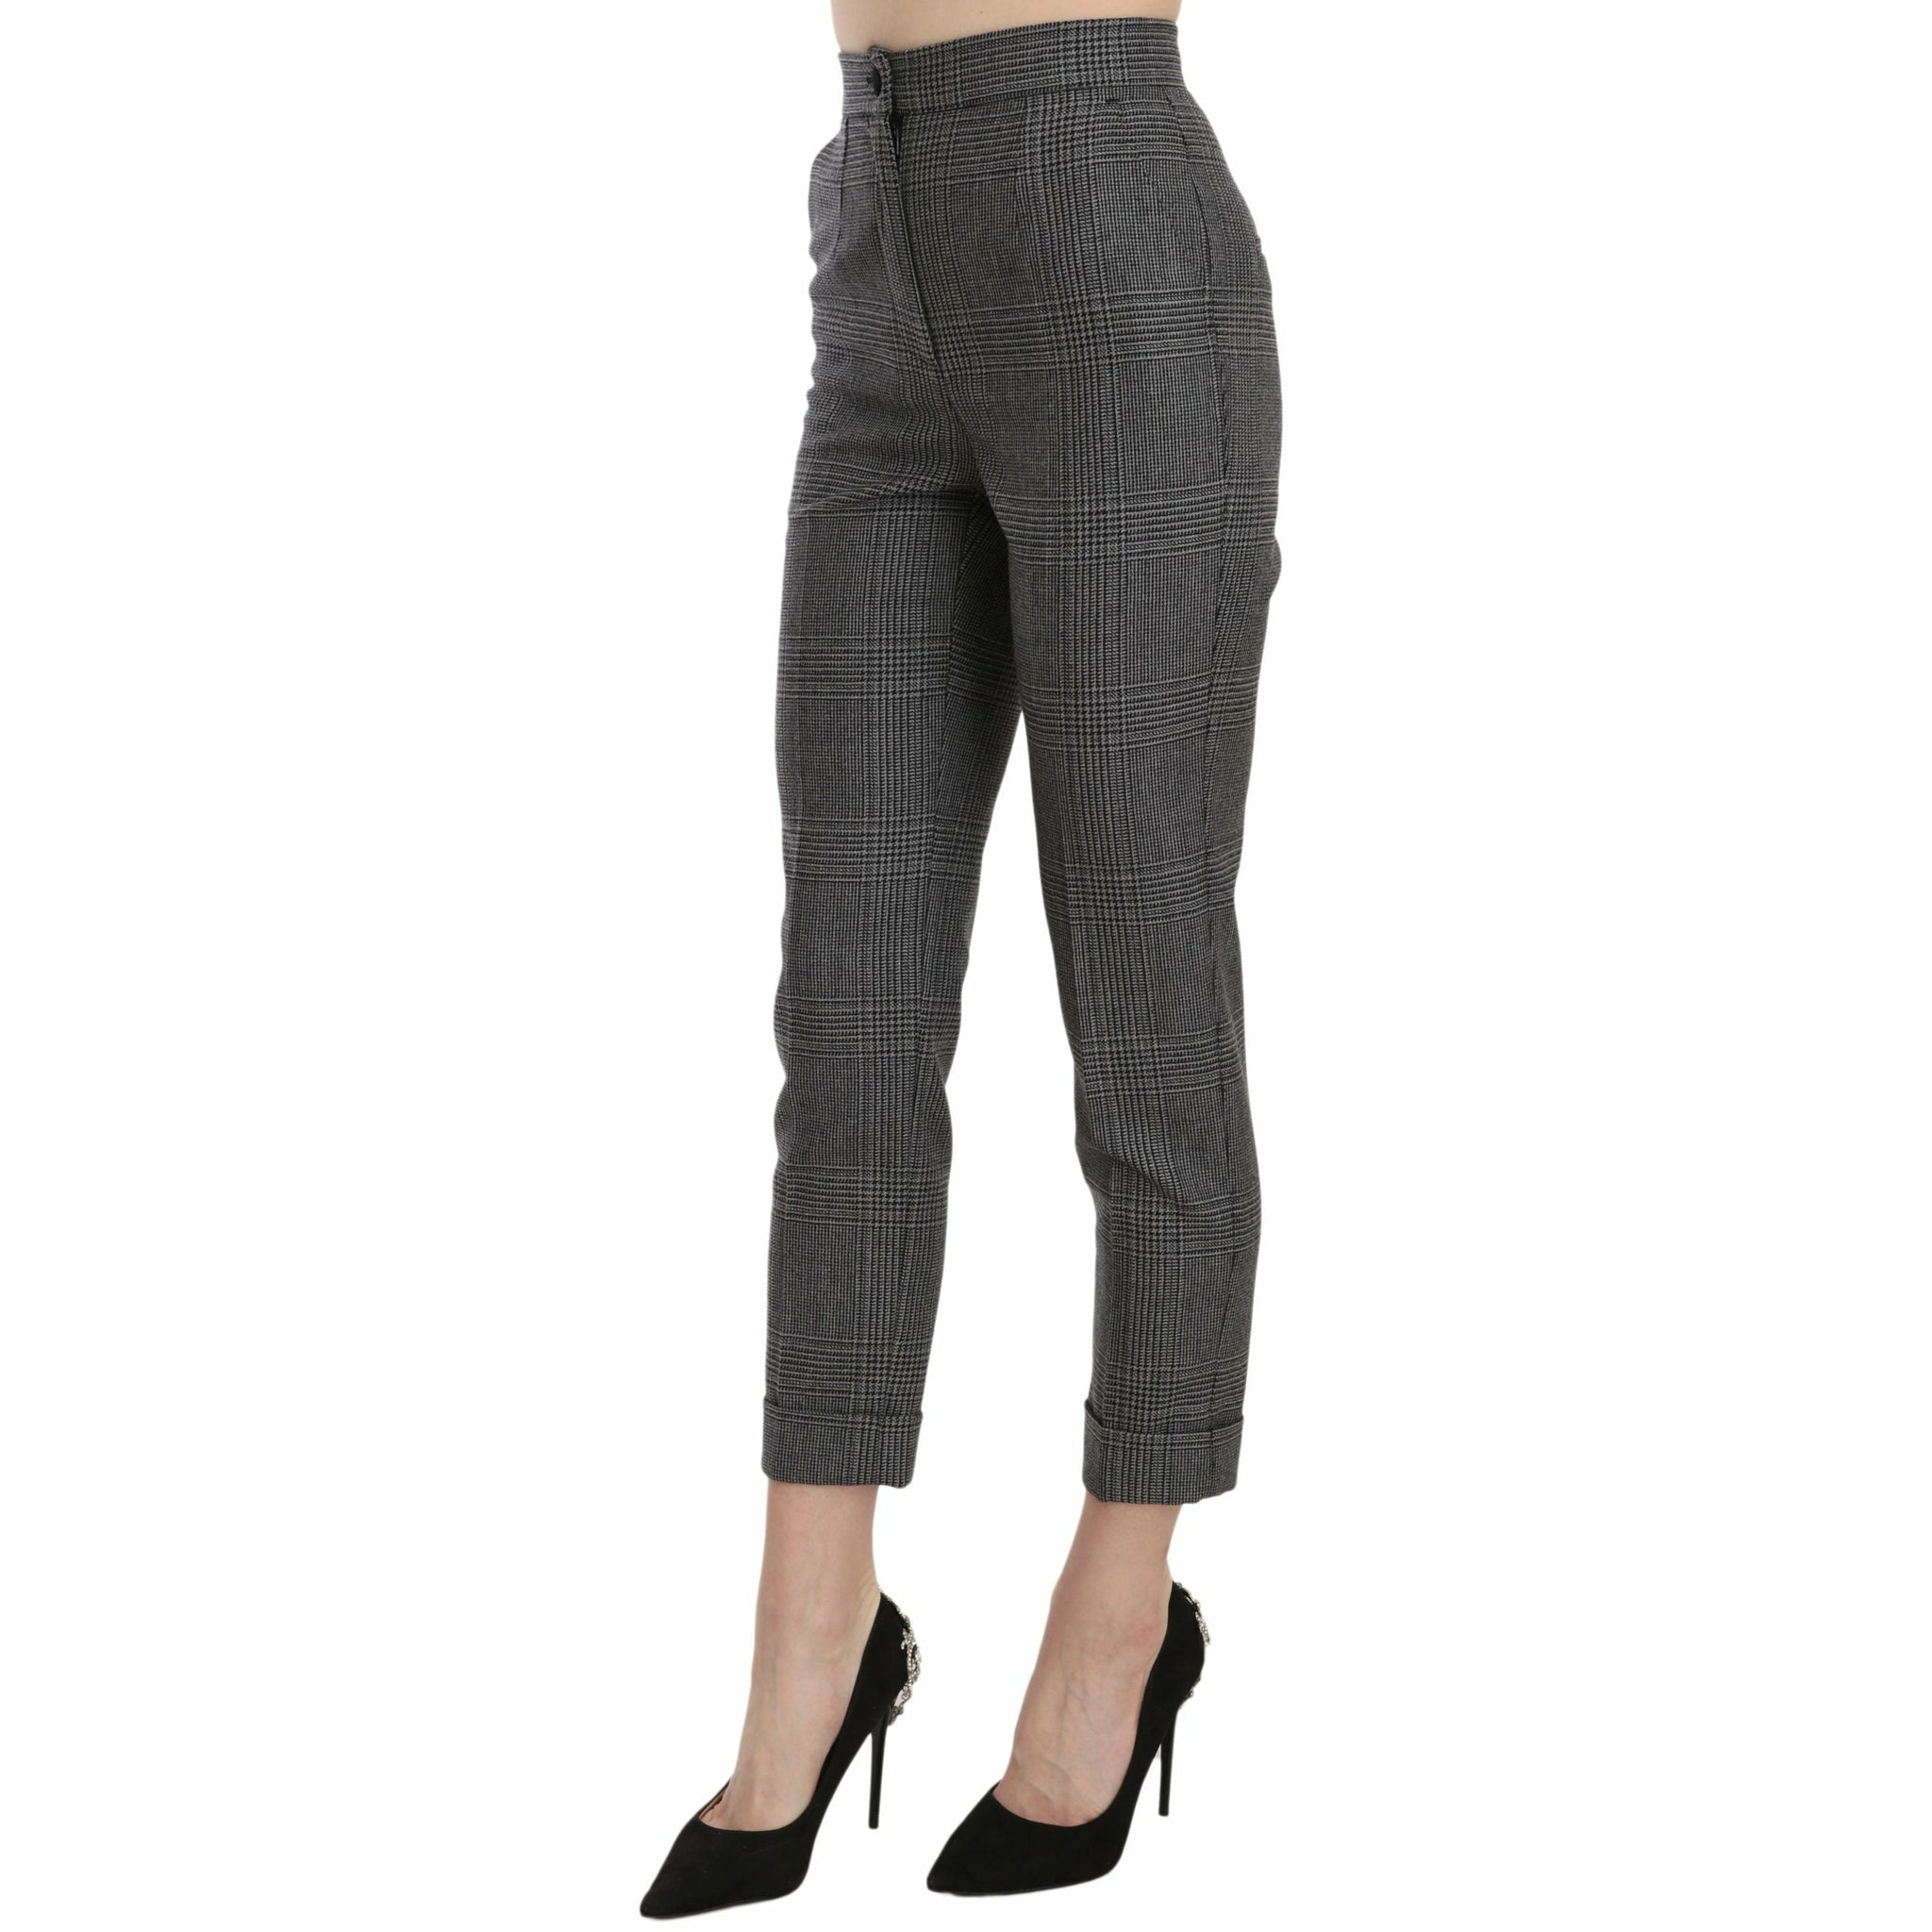 Black Mid Waist Skinny Denim Cotton Jeans